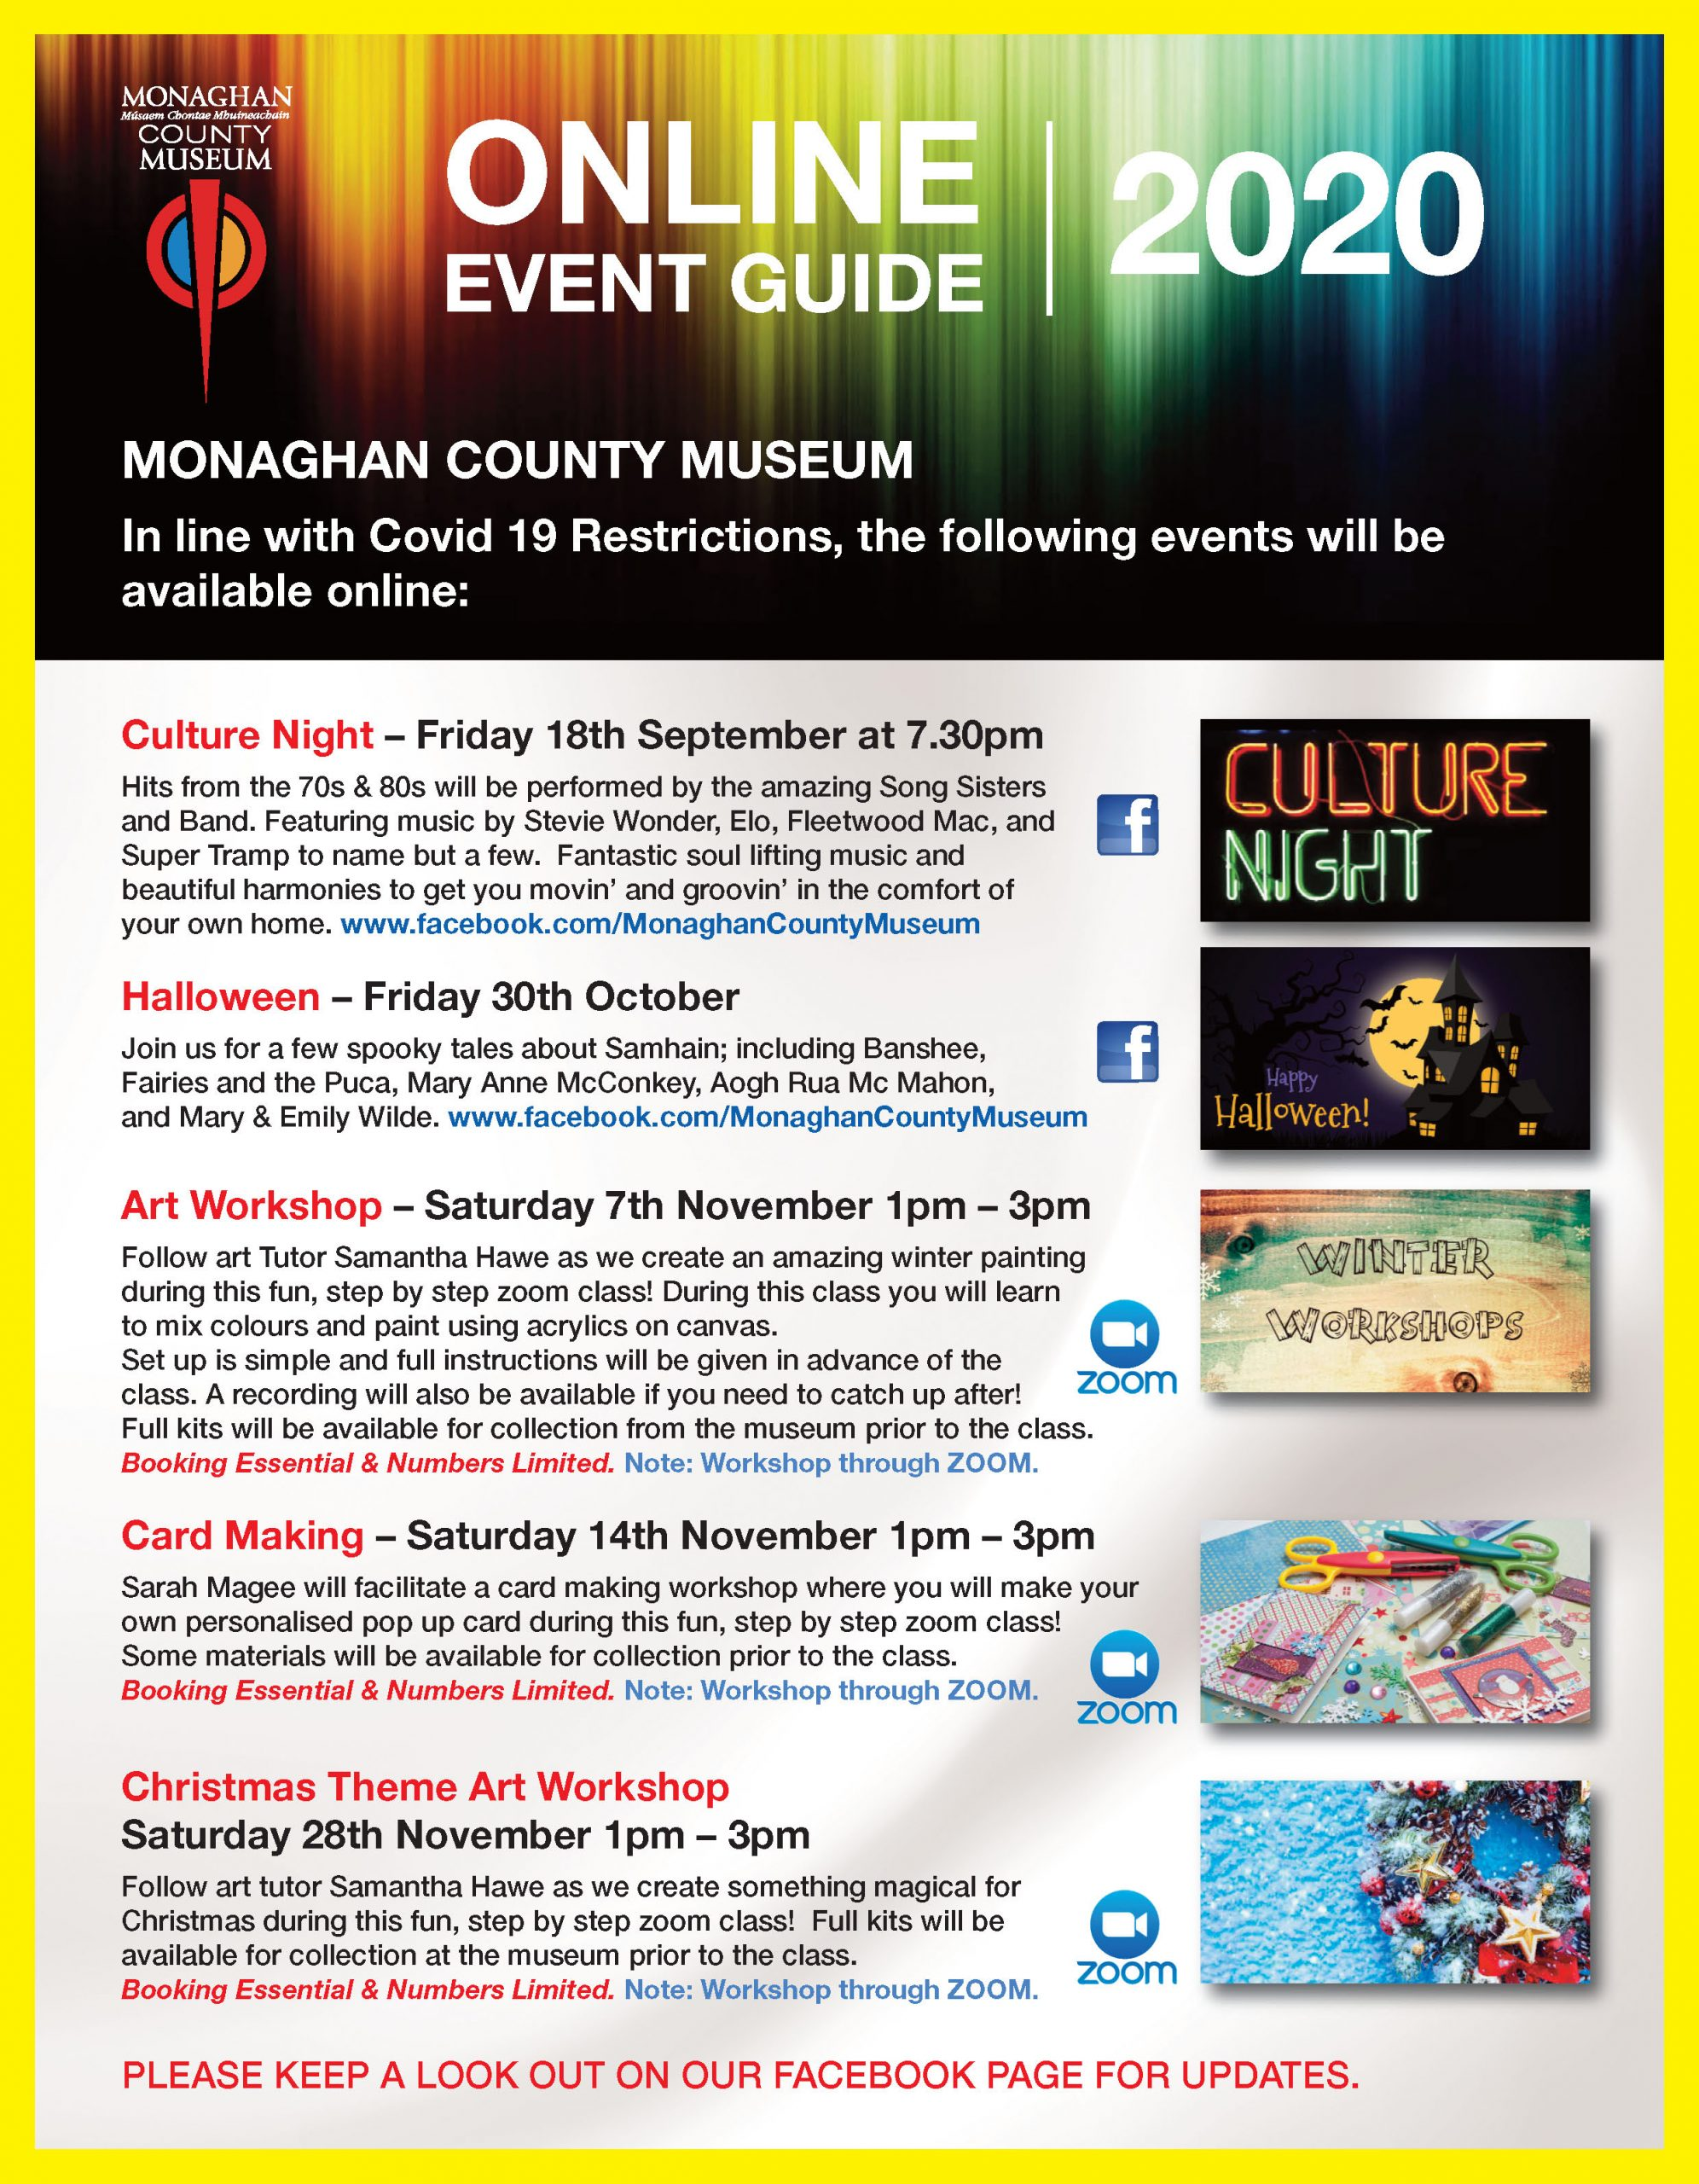 Monaghan County Museum Online Event Guide